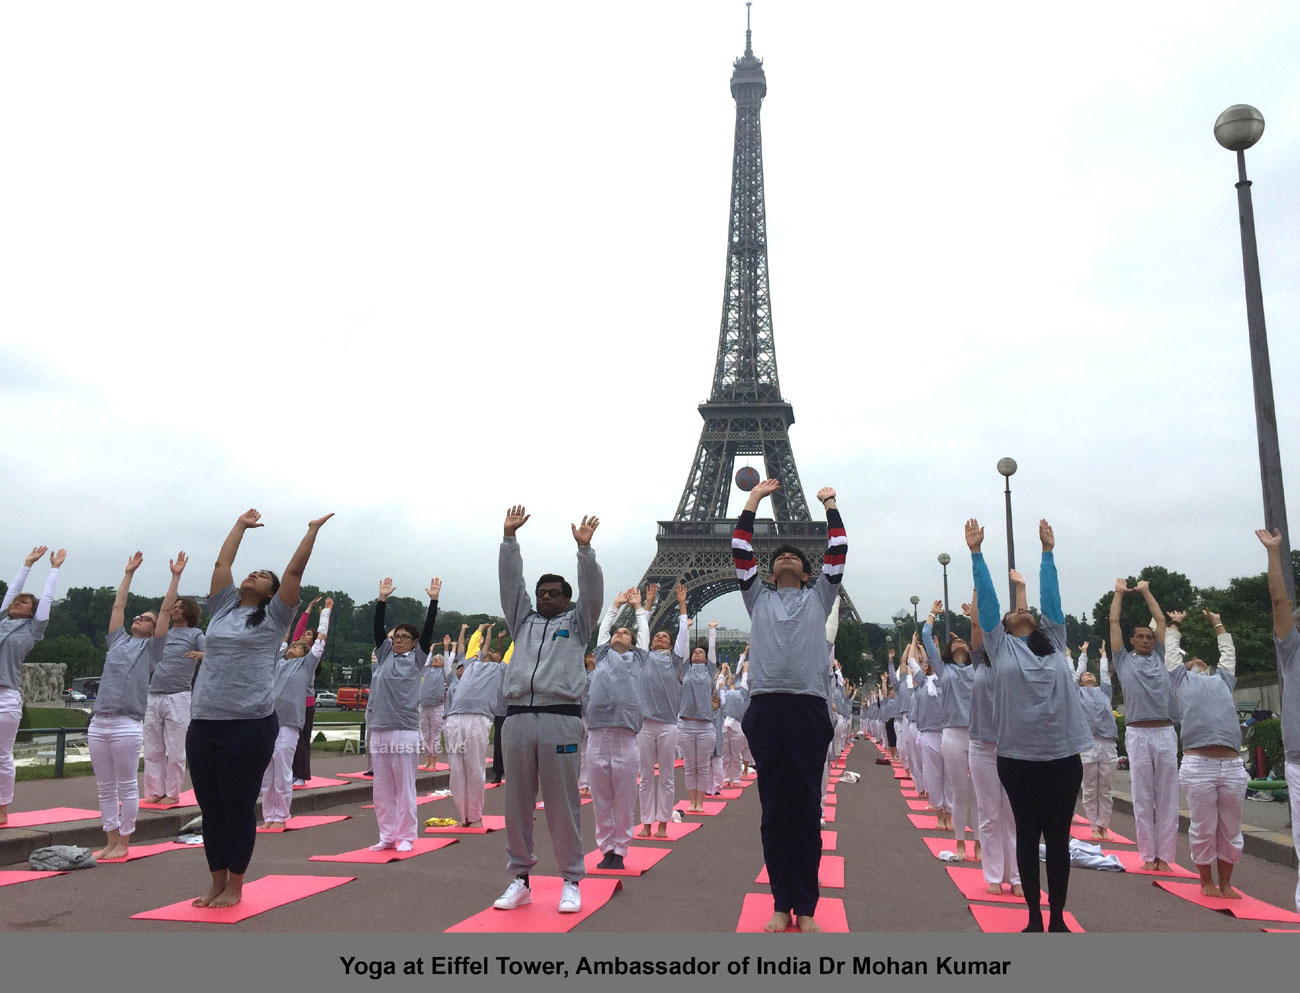 Euro Cup and Yoga Festival at Eiffel Tower Rocked Paris - Picture 4